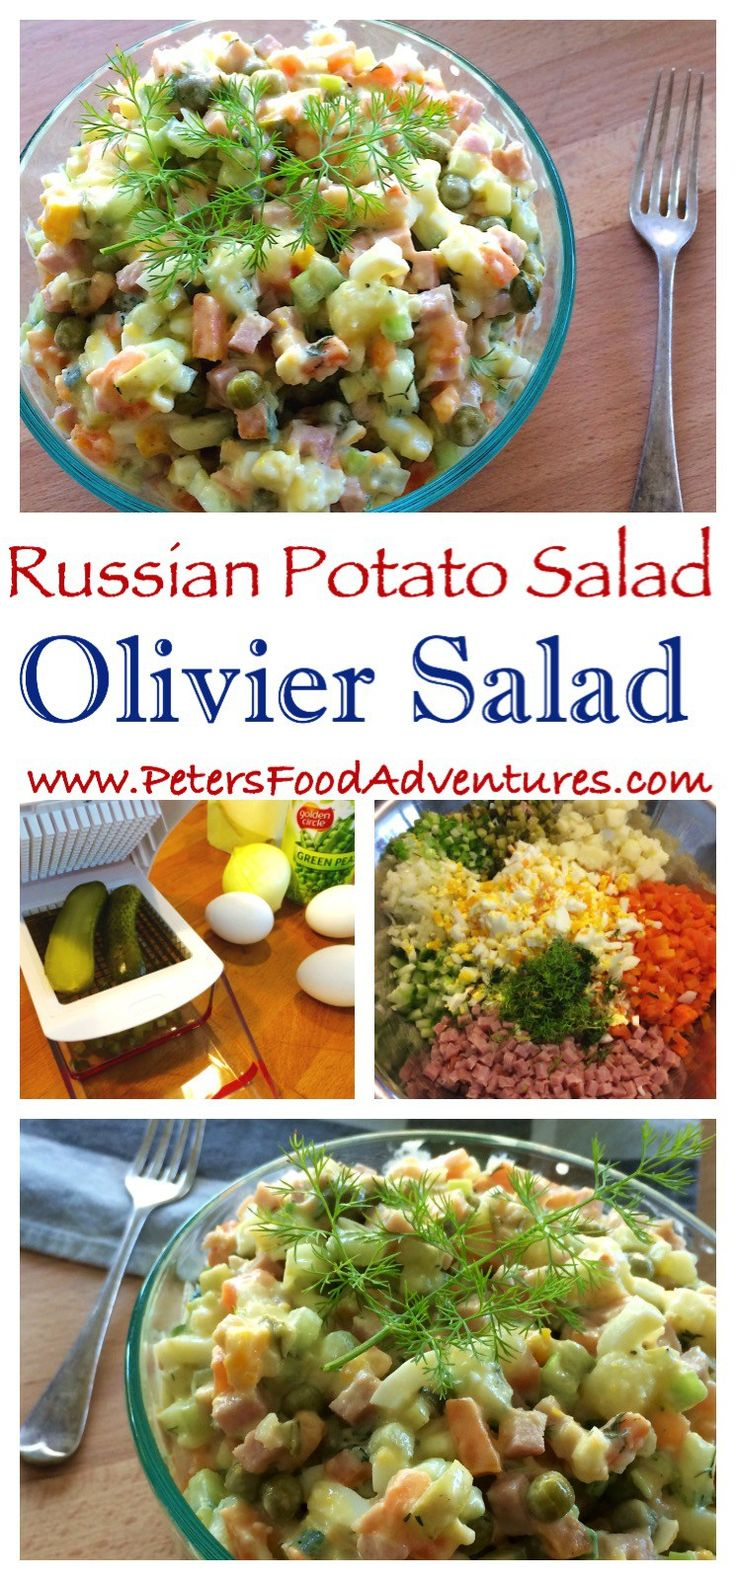 potato salad with russian potato salad or olivier or russian salad